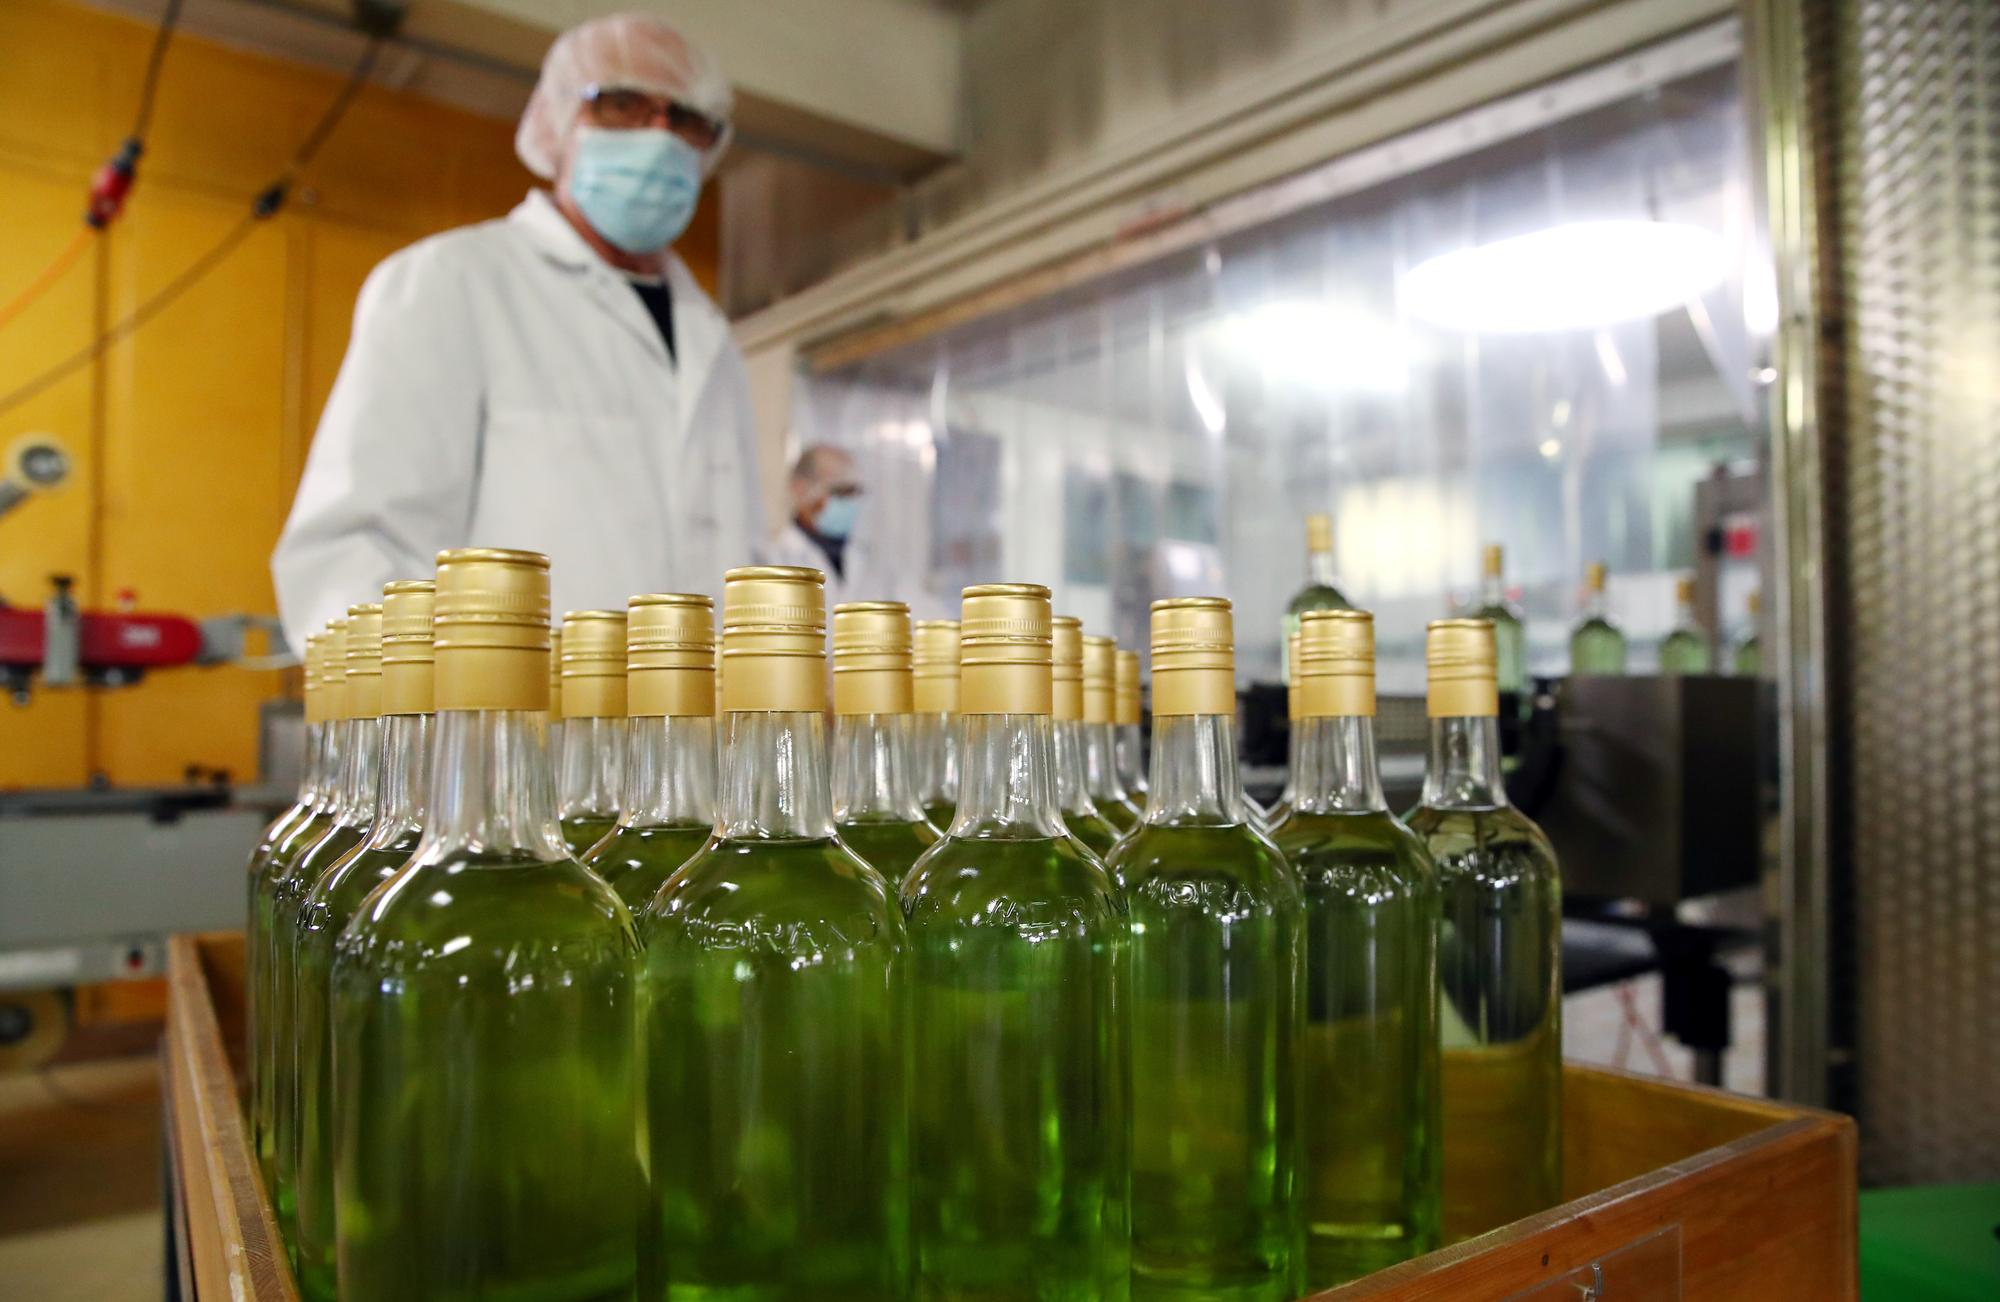 Swiss distillery shifts from schnapps to sanitizer